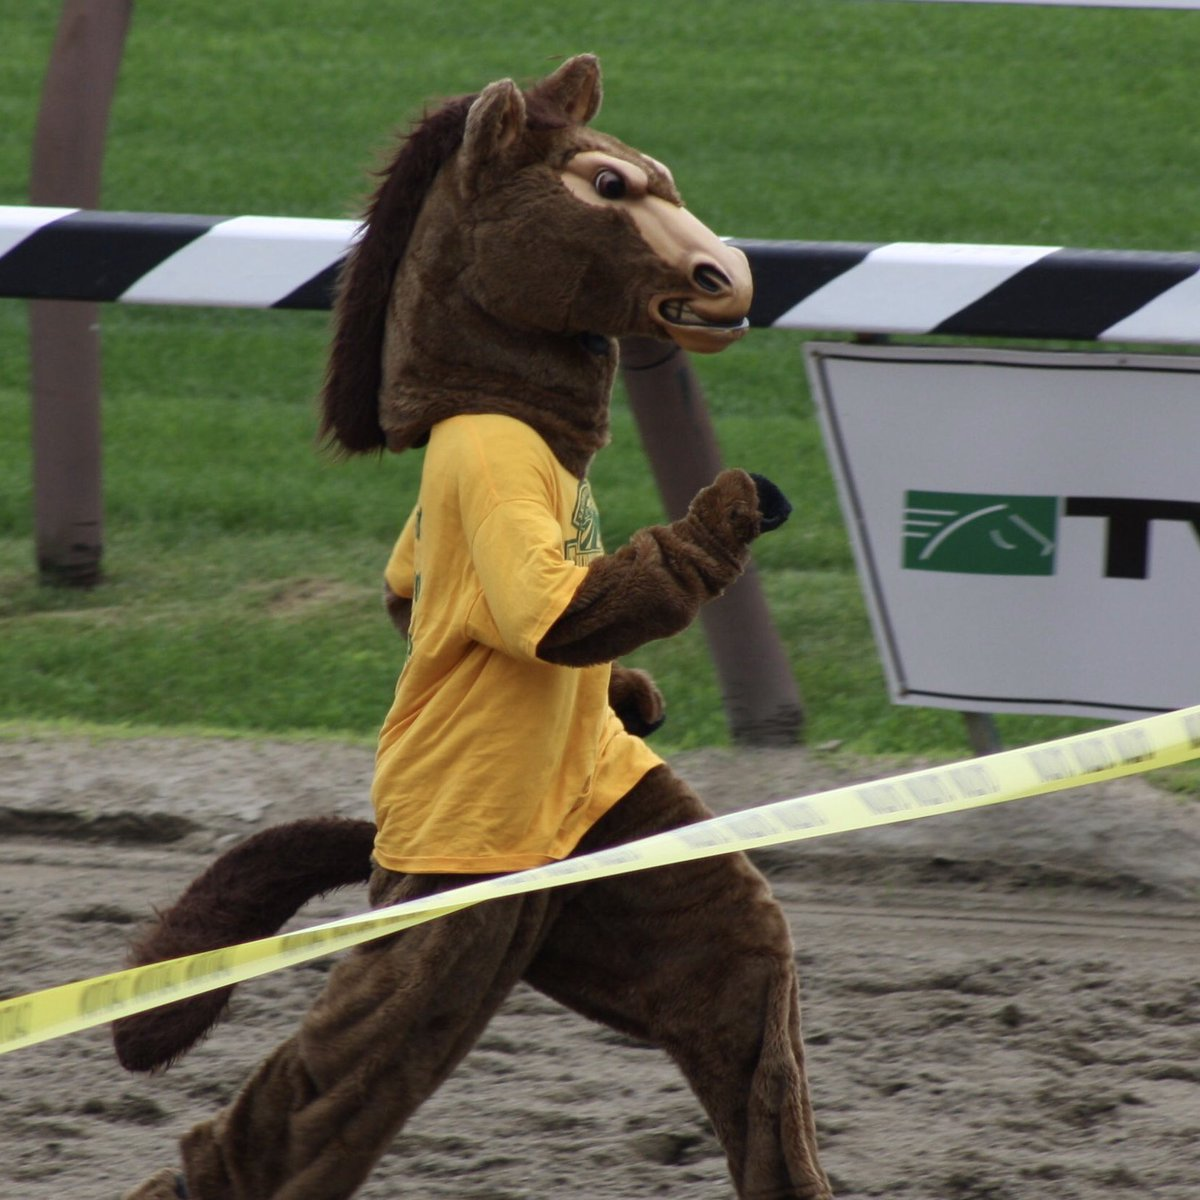 Hey @TheNYRA, when things get better can y'all bring back the mascot races? It's been way too long since I've flexed my hooves 😤 🐎 #TBT #Thoroughbred (circa 2009) https://t.co/YdCGkHTWqn